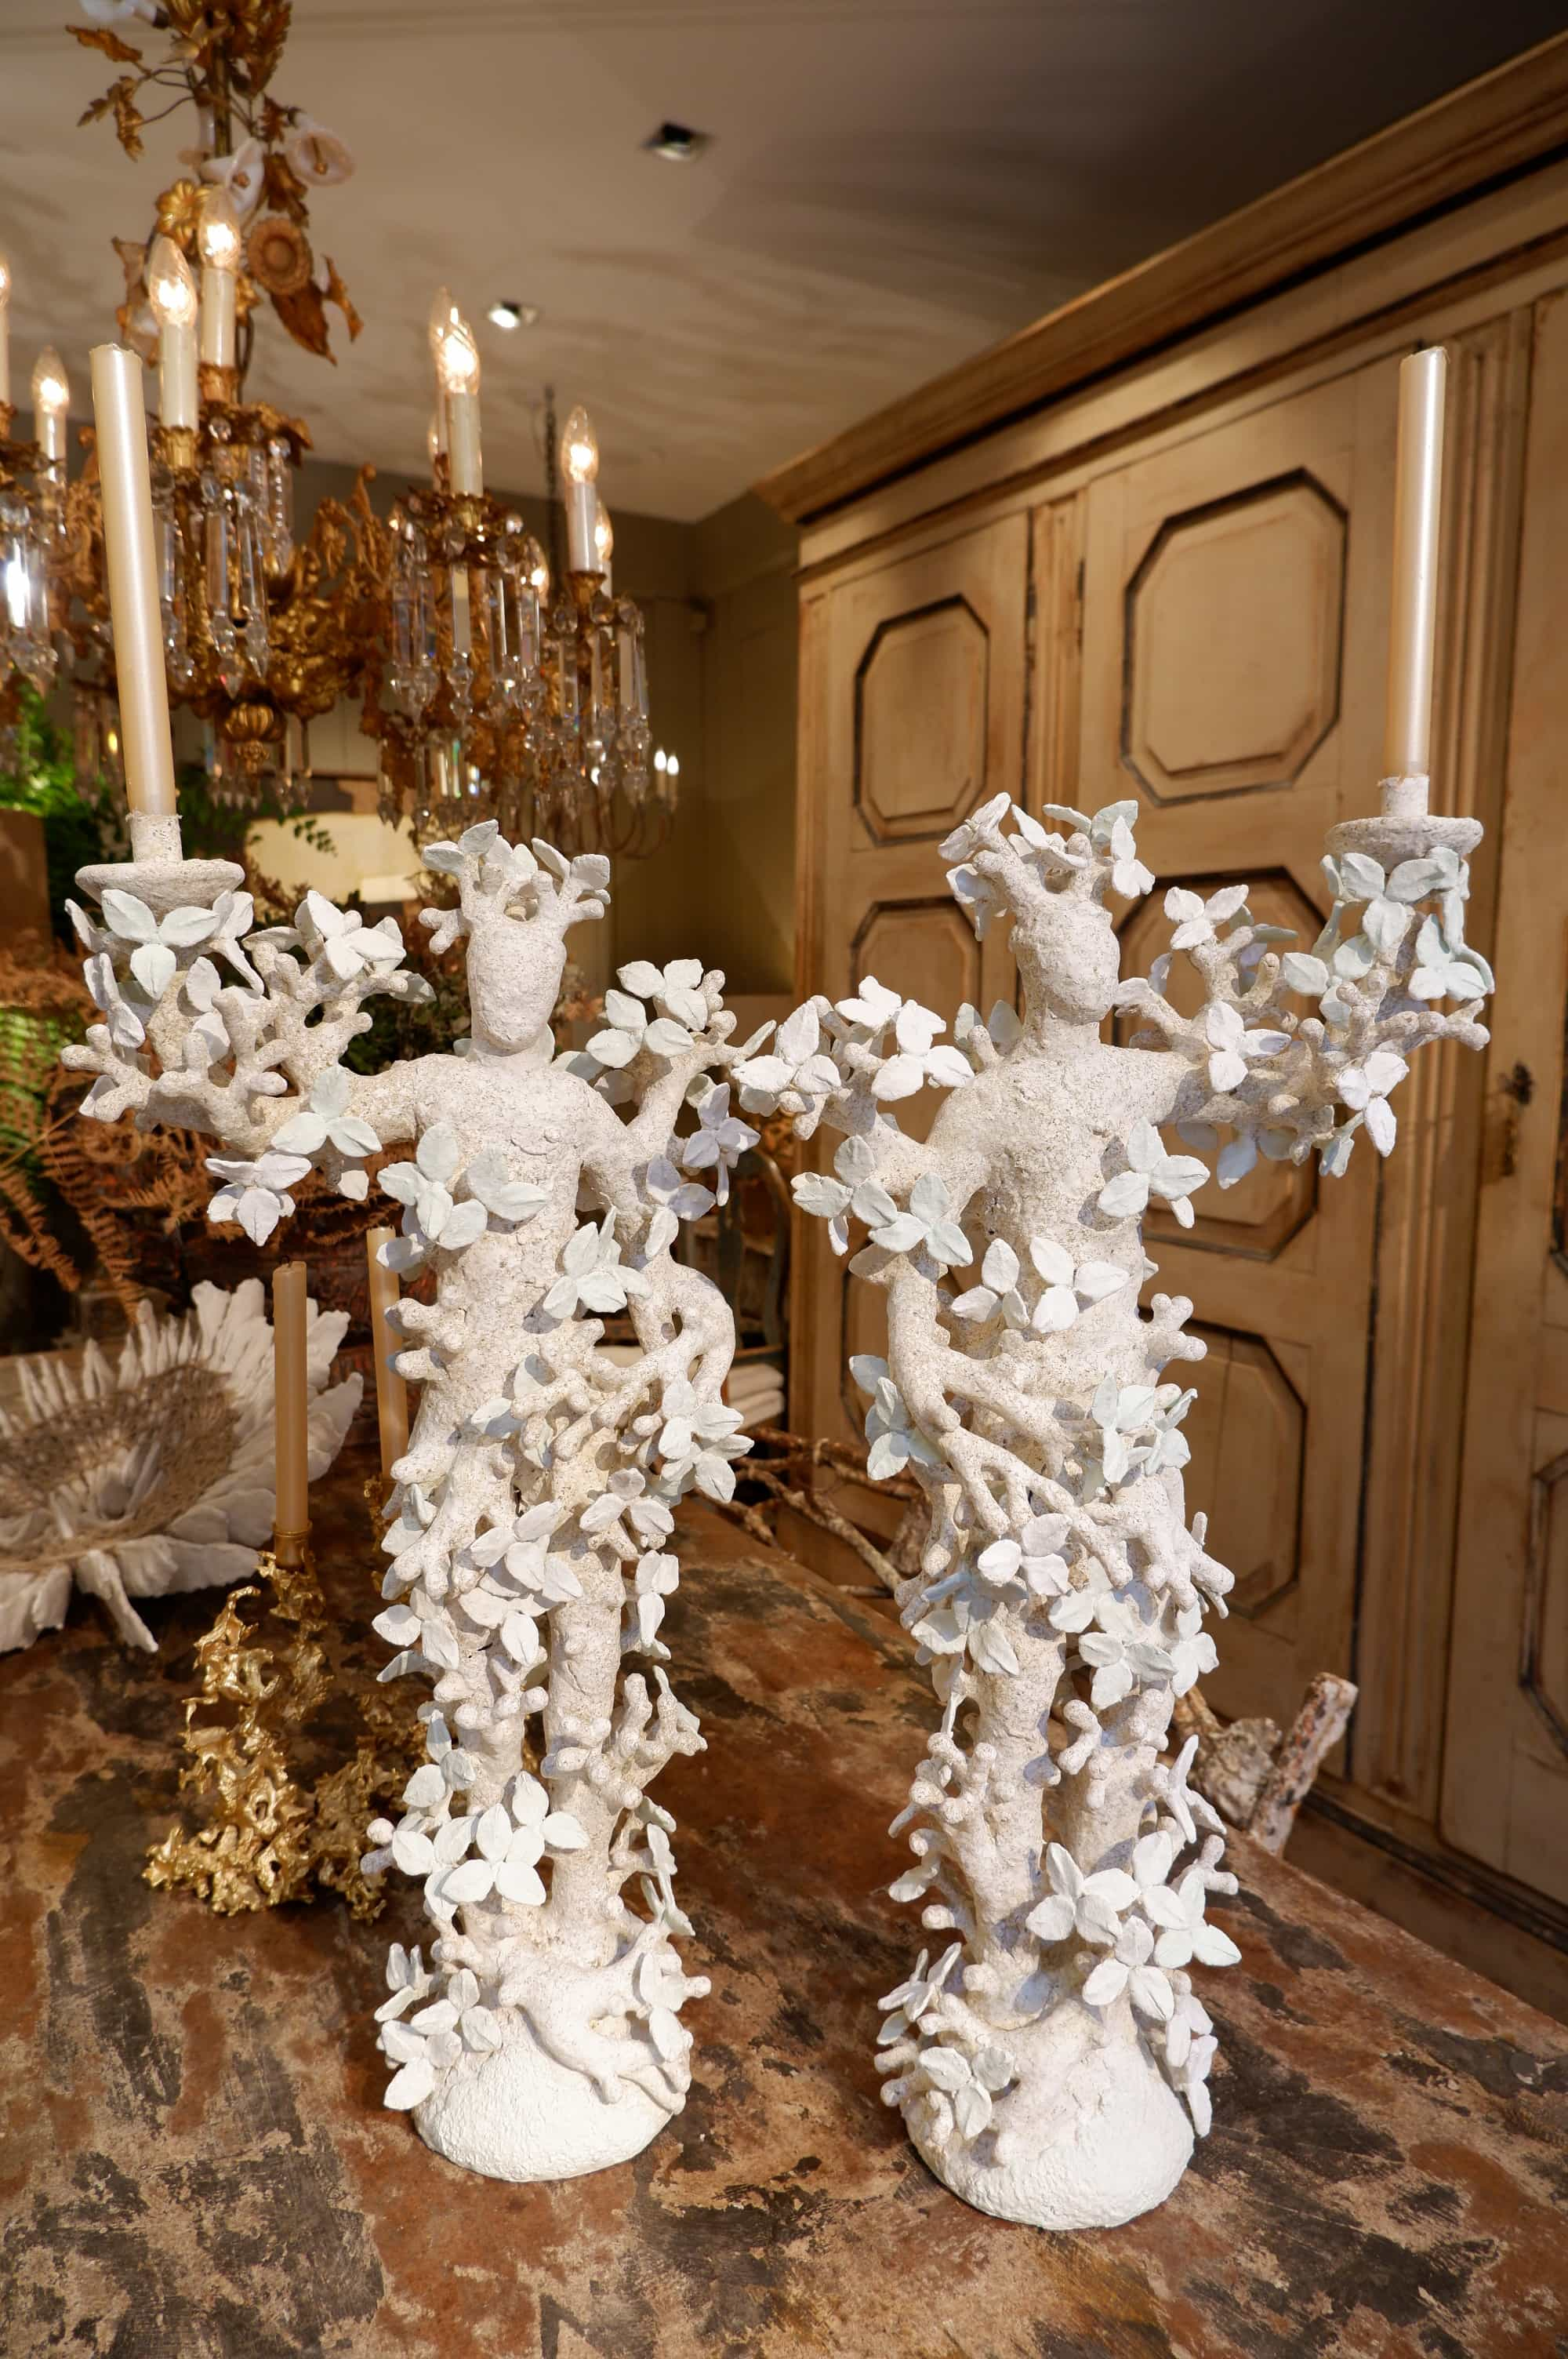 PAIR OF LEAVES CANDELABRA BY EDOUARD CHEVALIER